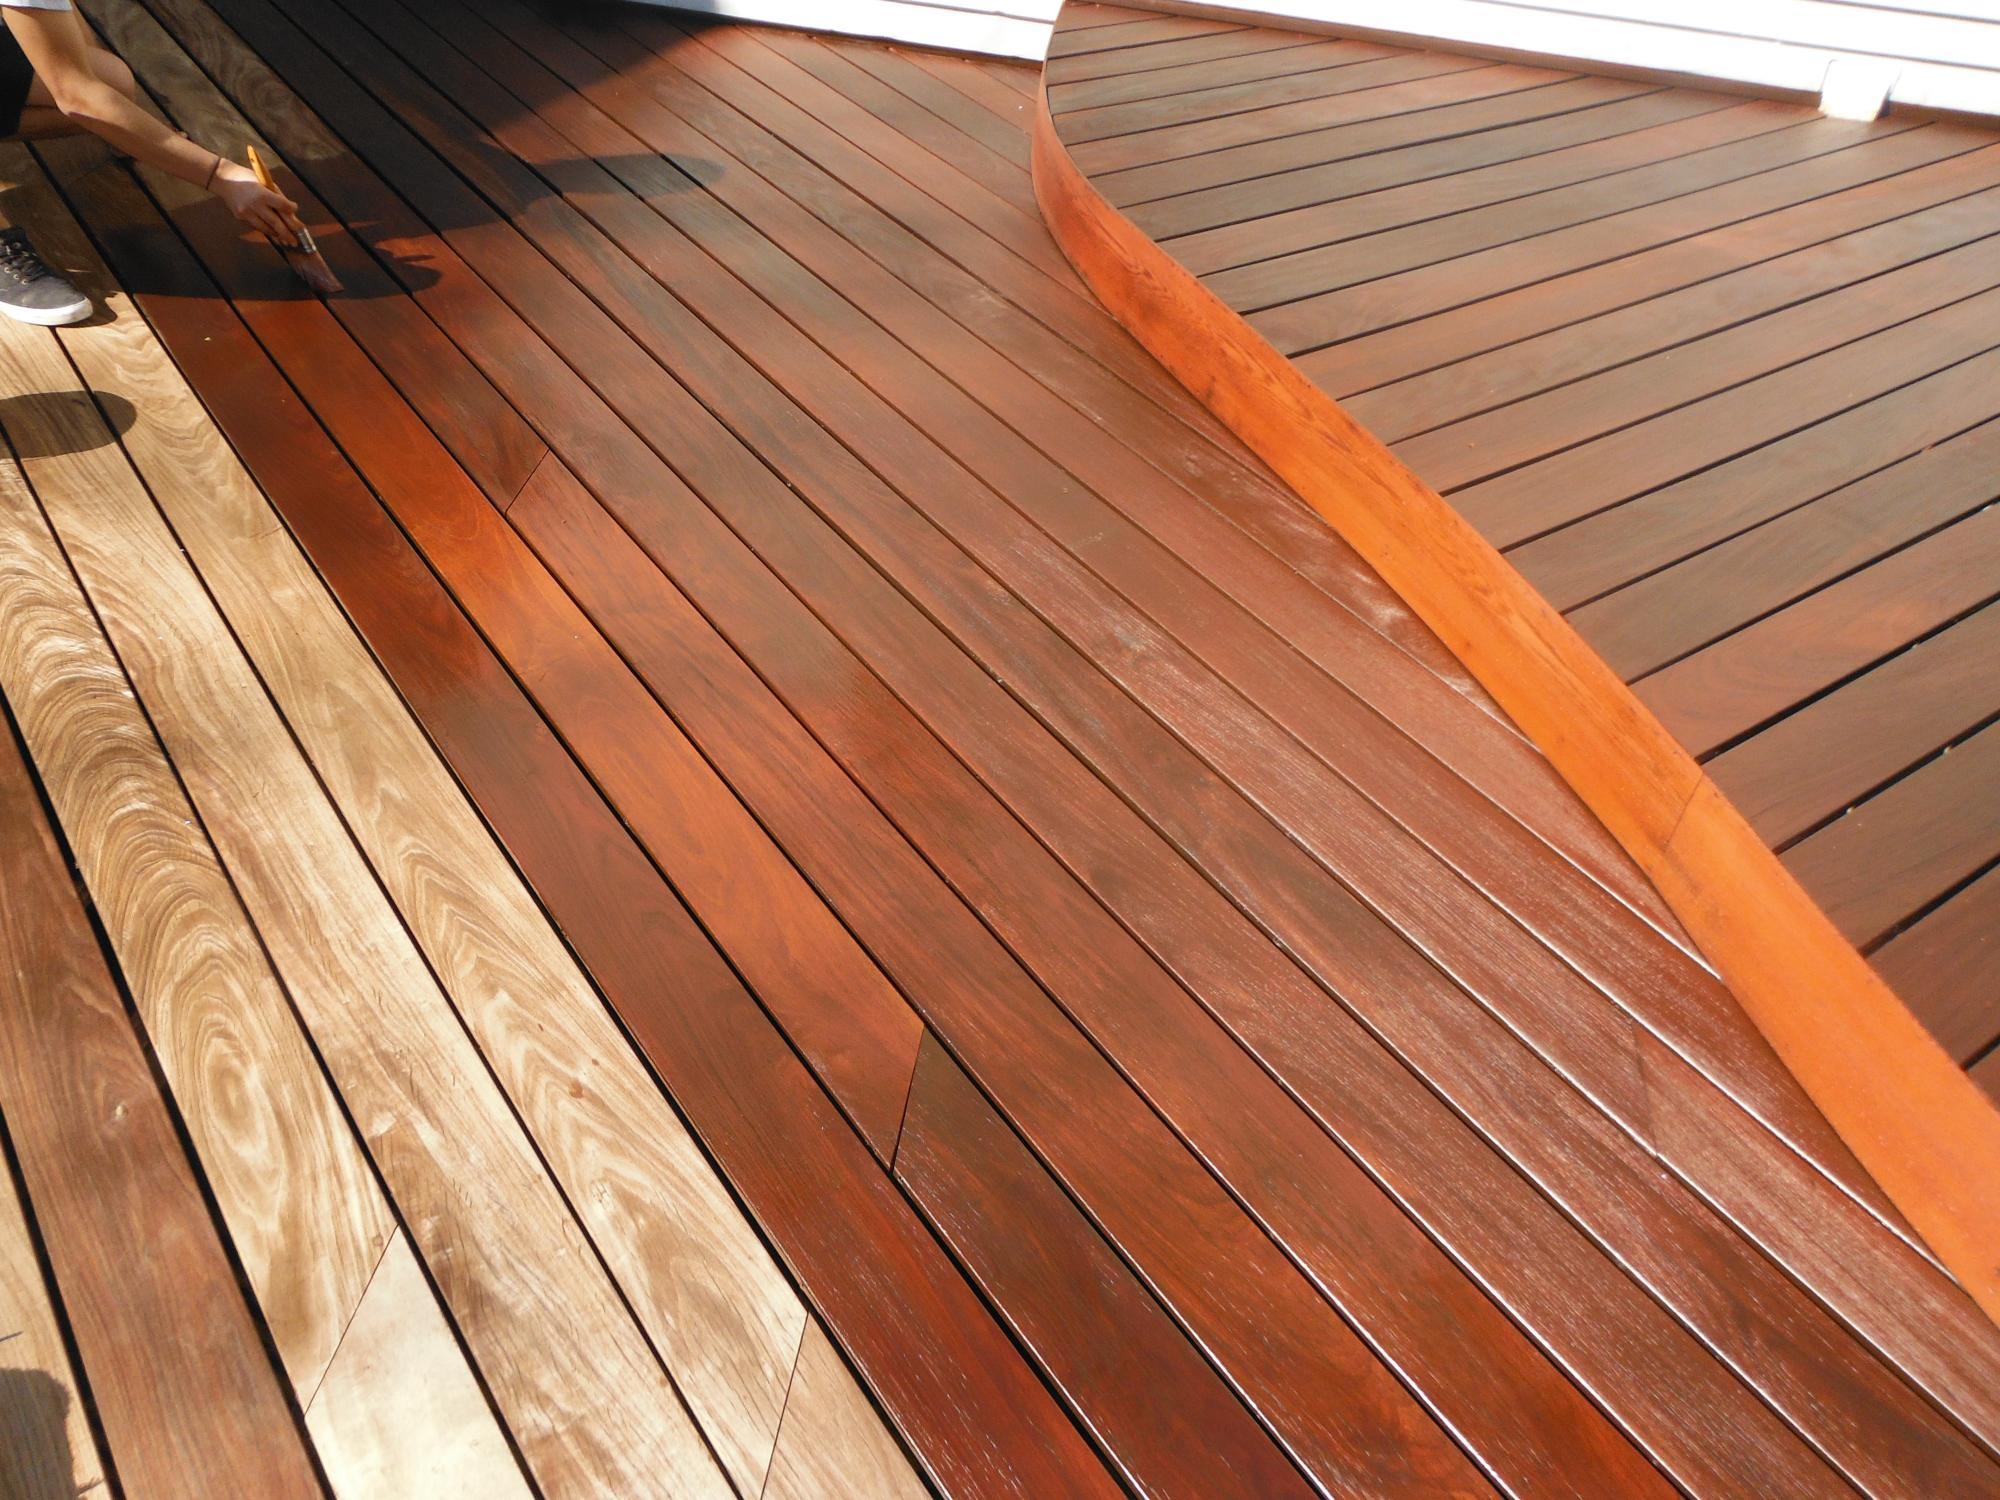 IPE deck sealing